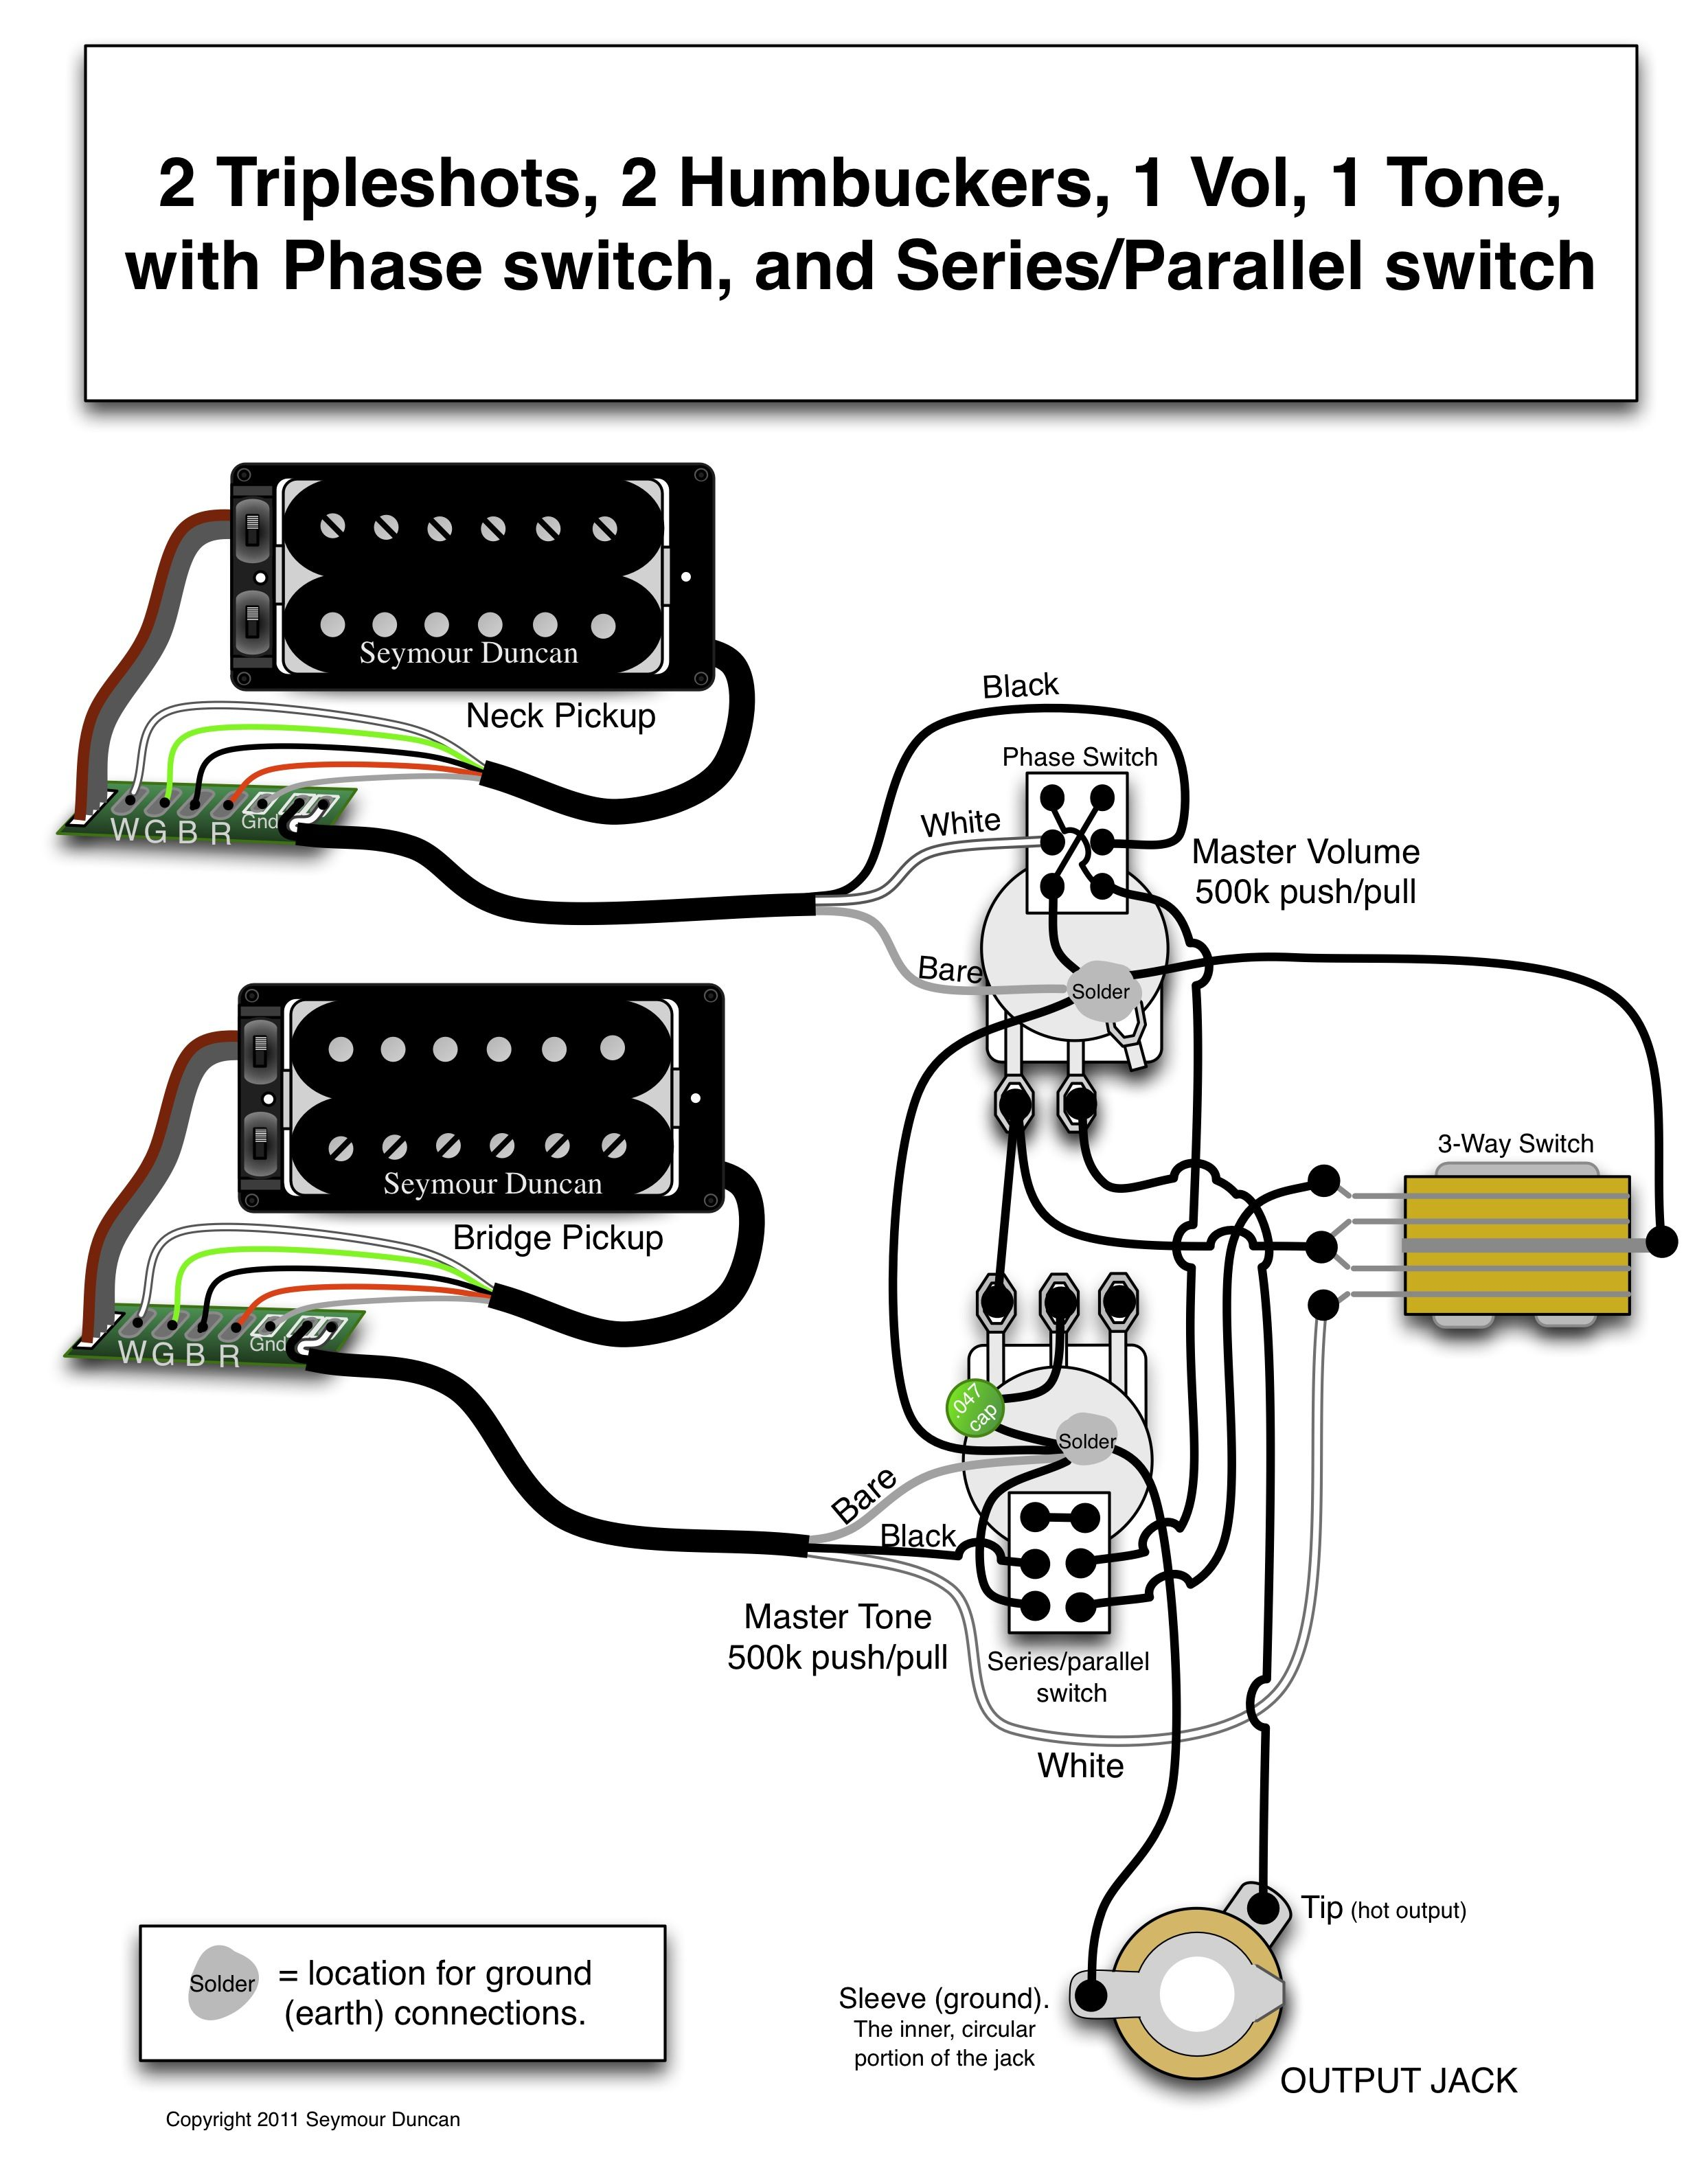 seymour duncan wiring diagram 2 triple shots 2 humbuckers 1 vol with phase switch 1 tone with series parallel switch [ 2487 x 3141 Pixel ]